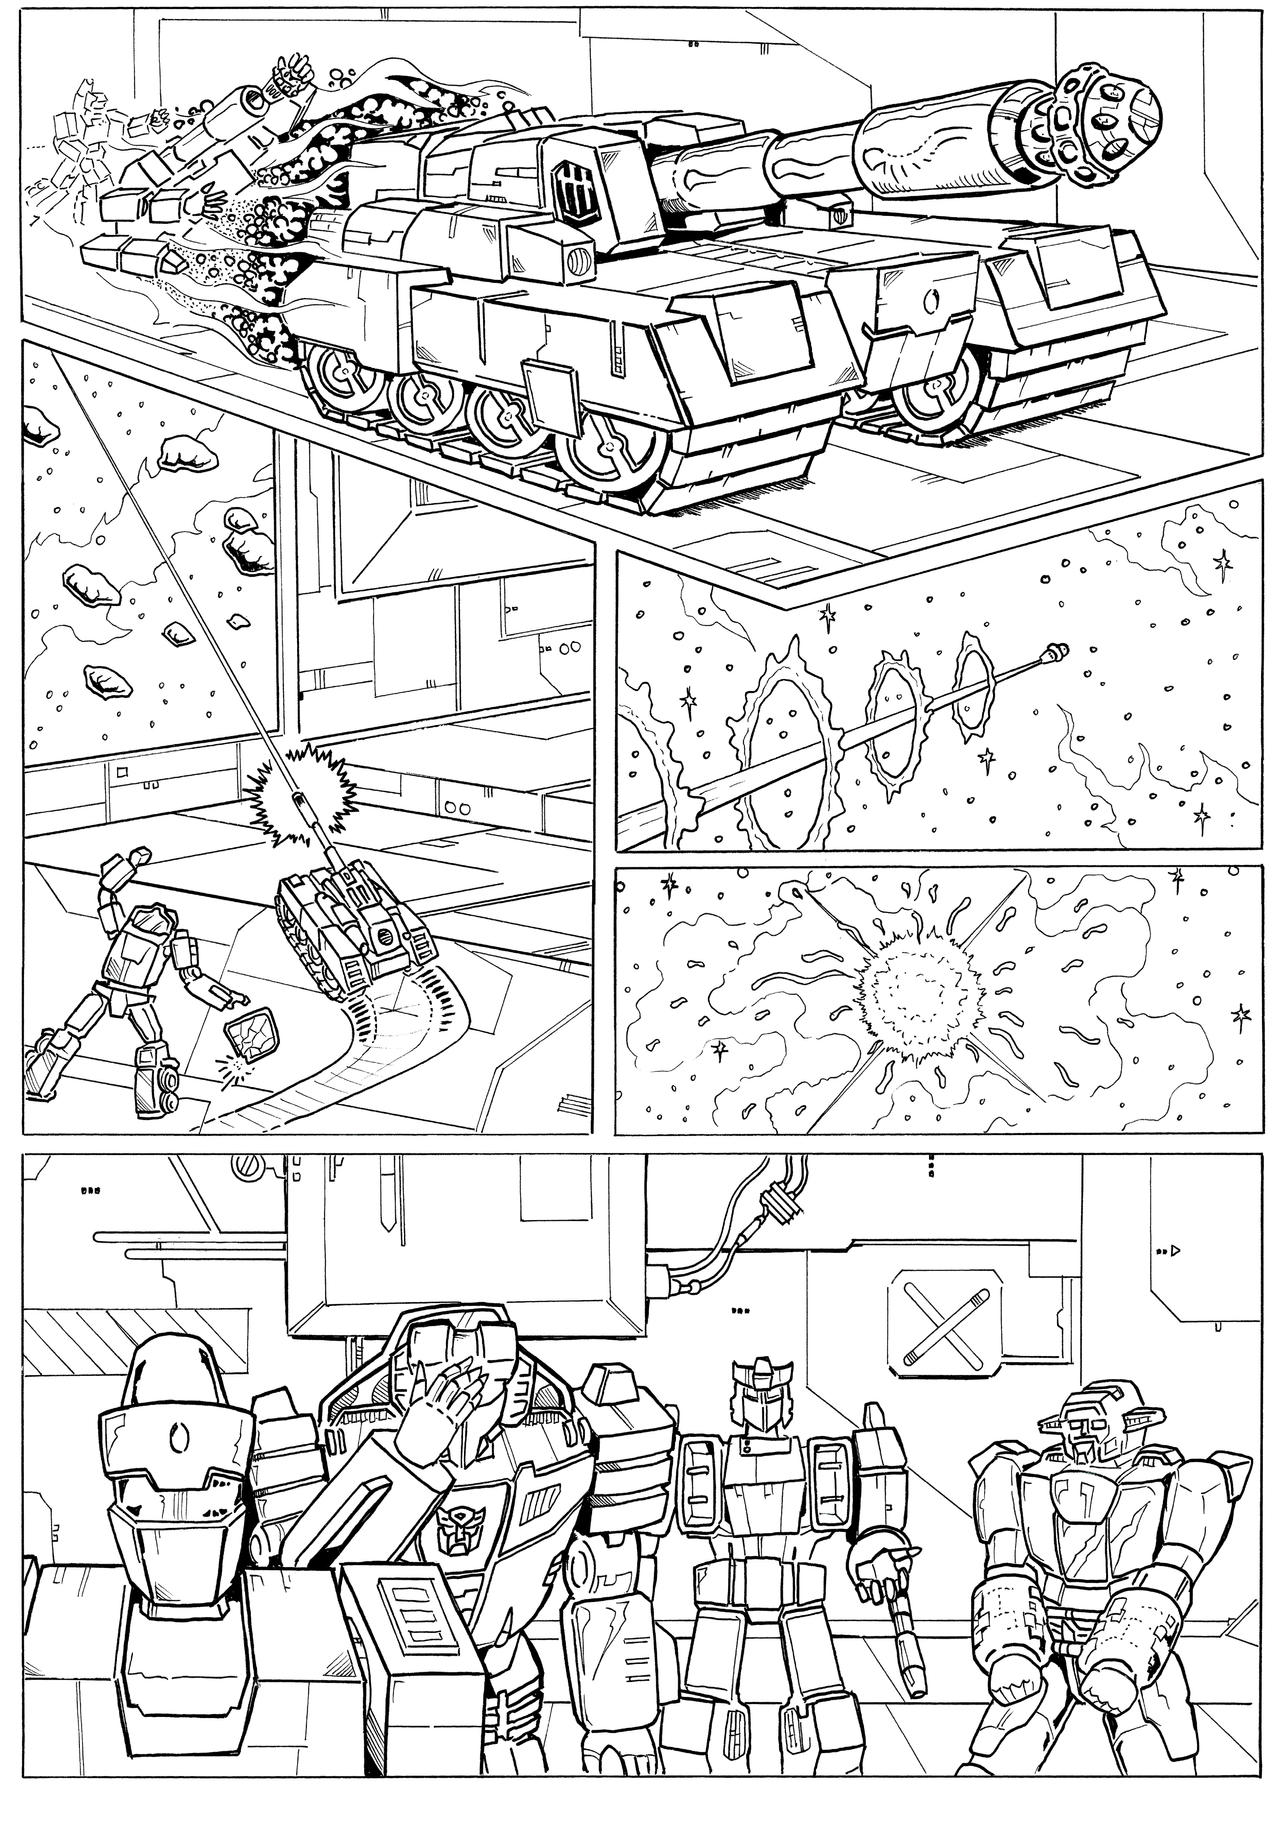 SoD TTO page 23 inks